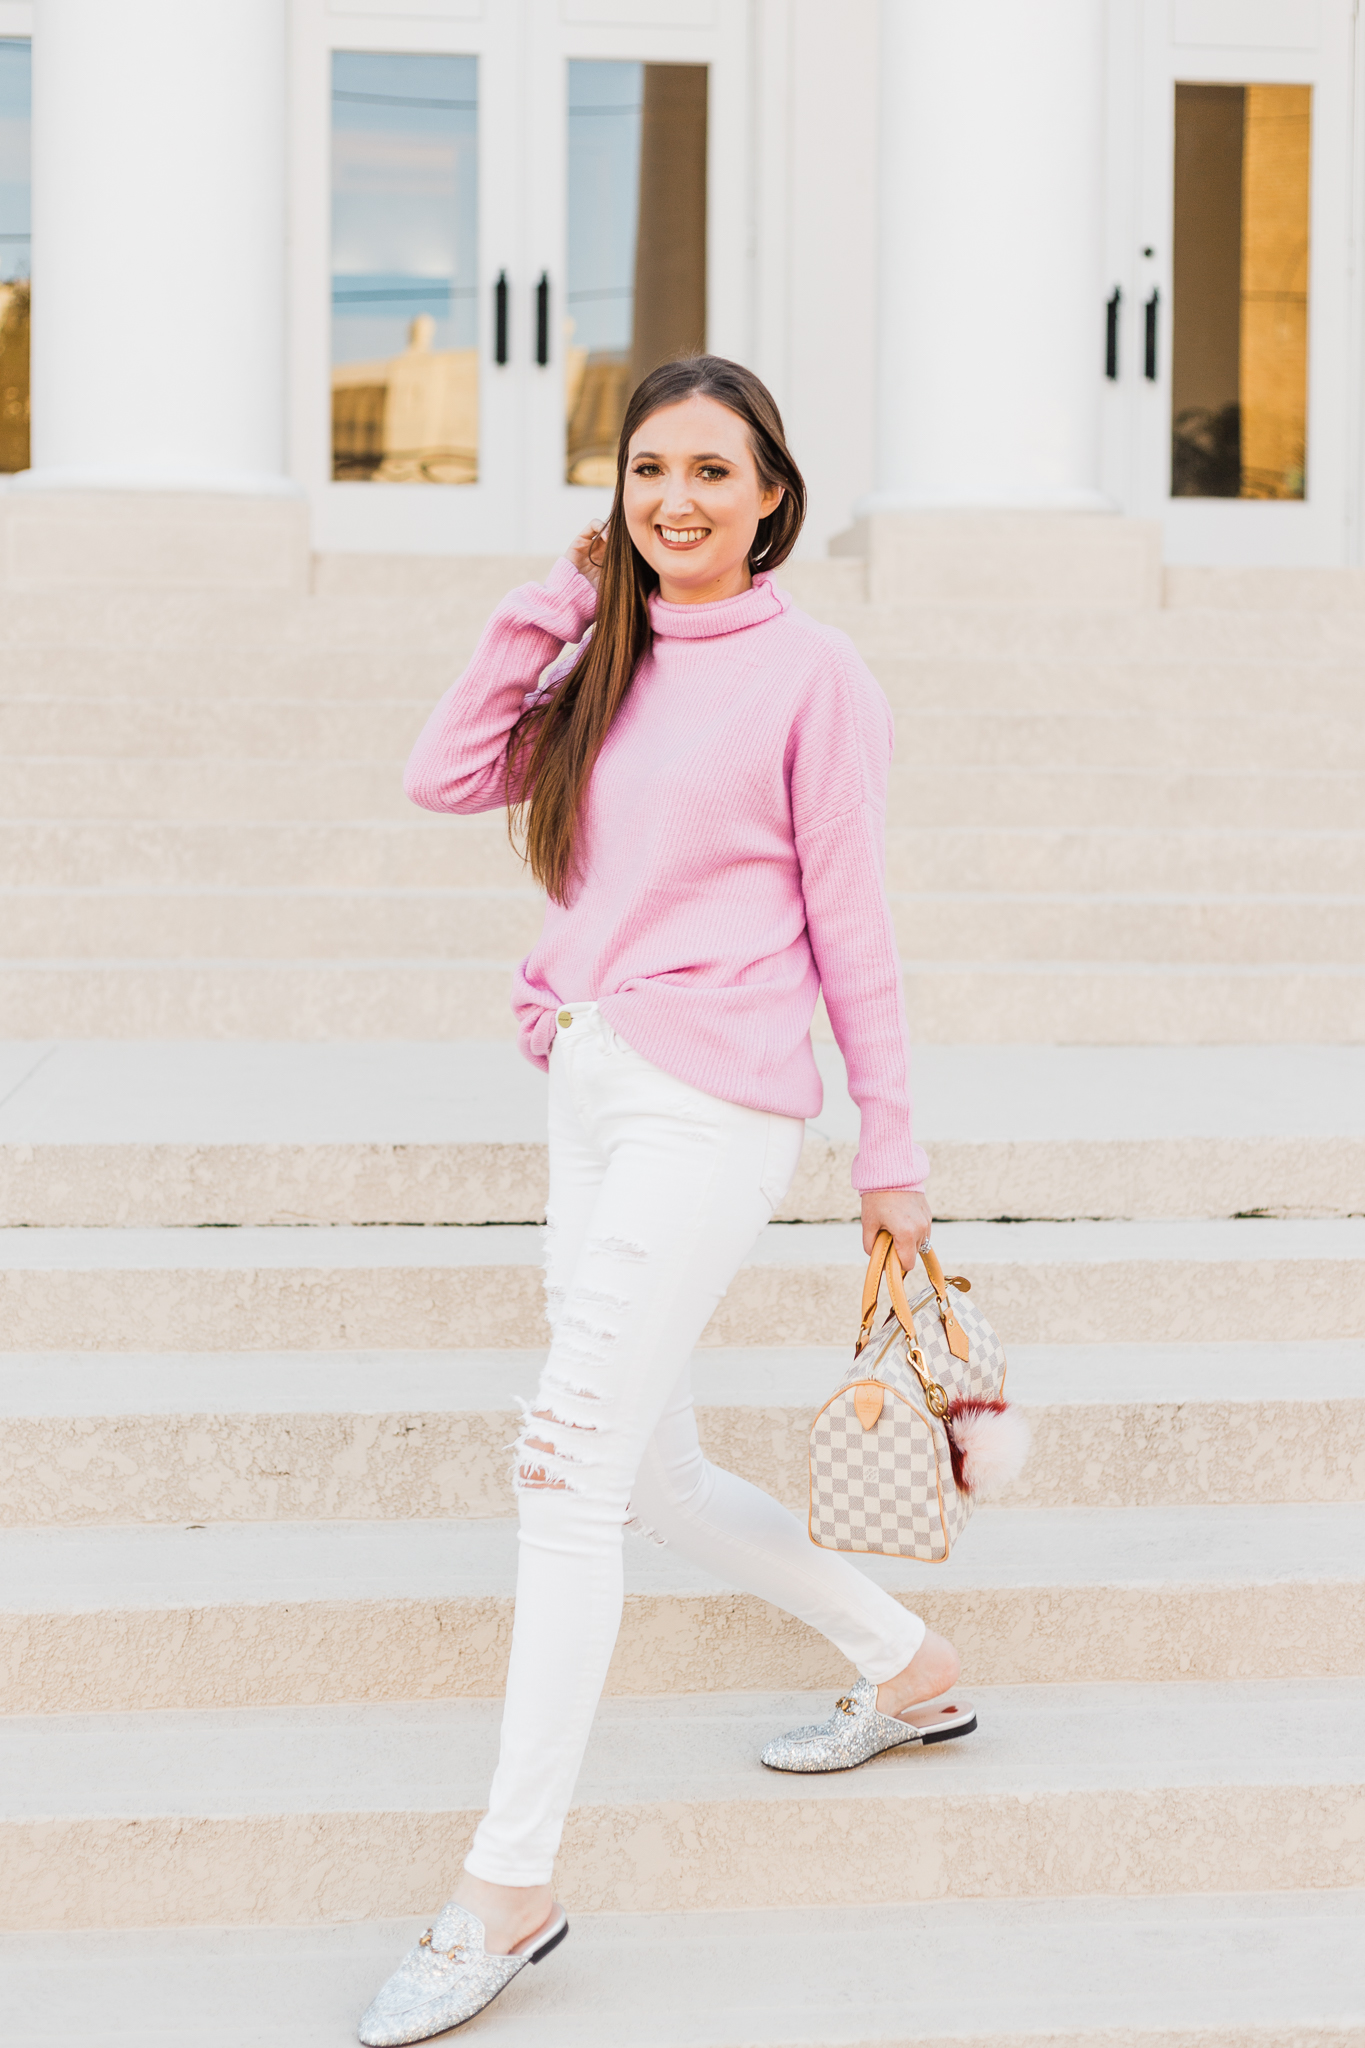 Pink oversized sweater, pink oversized sweater style inspiration, pink sweater, pink fluffy sweater, Gucci mules, Gucci glitter mules, white jeans, white ripped jeans, mules, pink and white outfit, Louis Vuitton speedy 25, pastel pink sweater